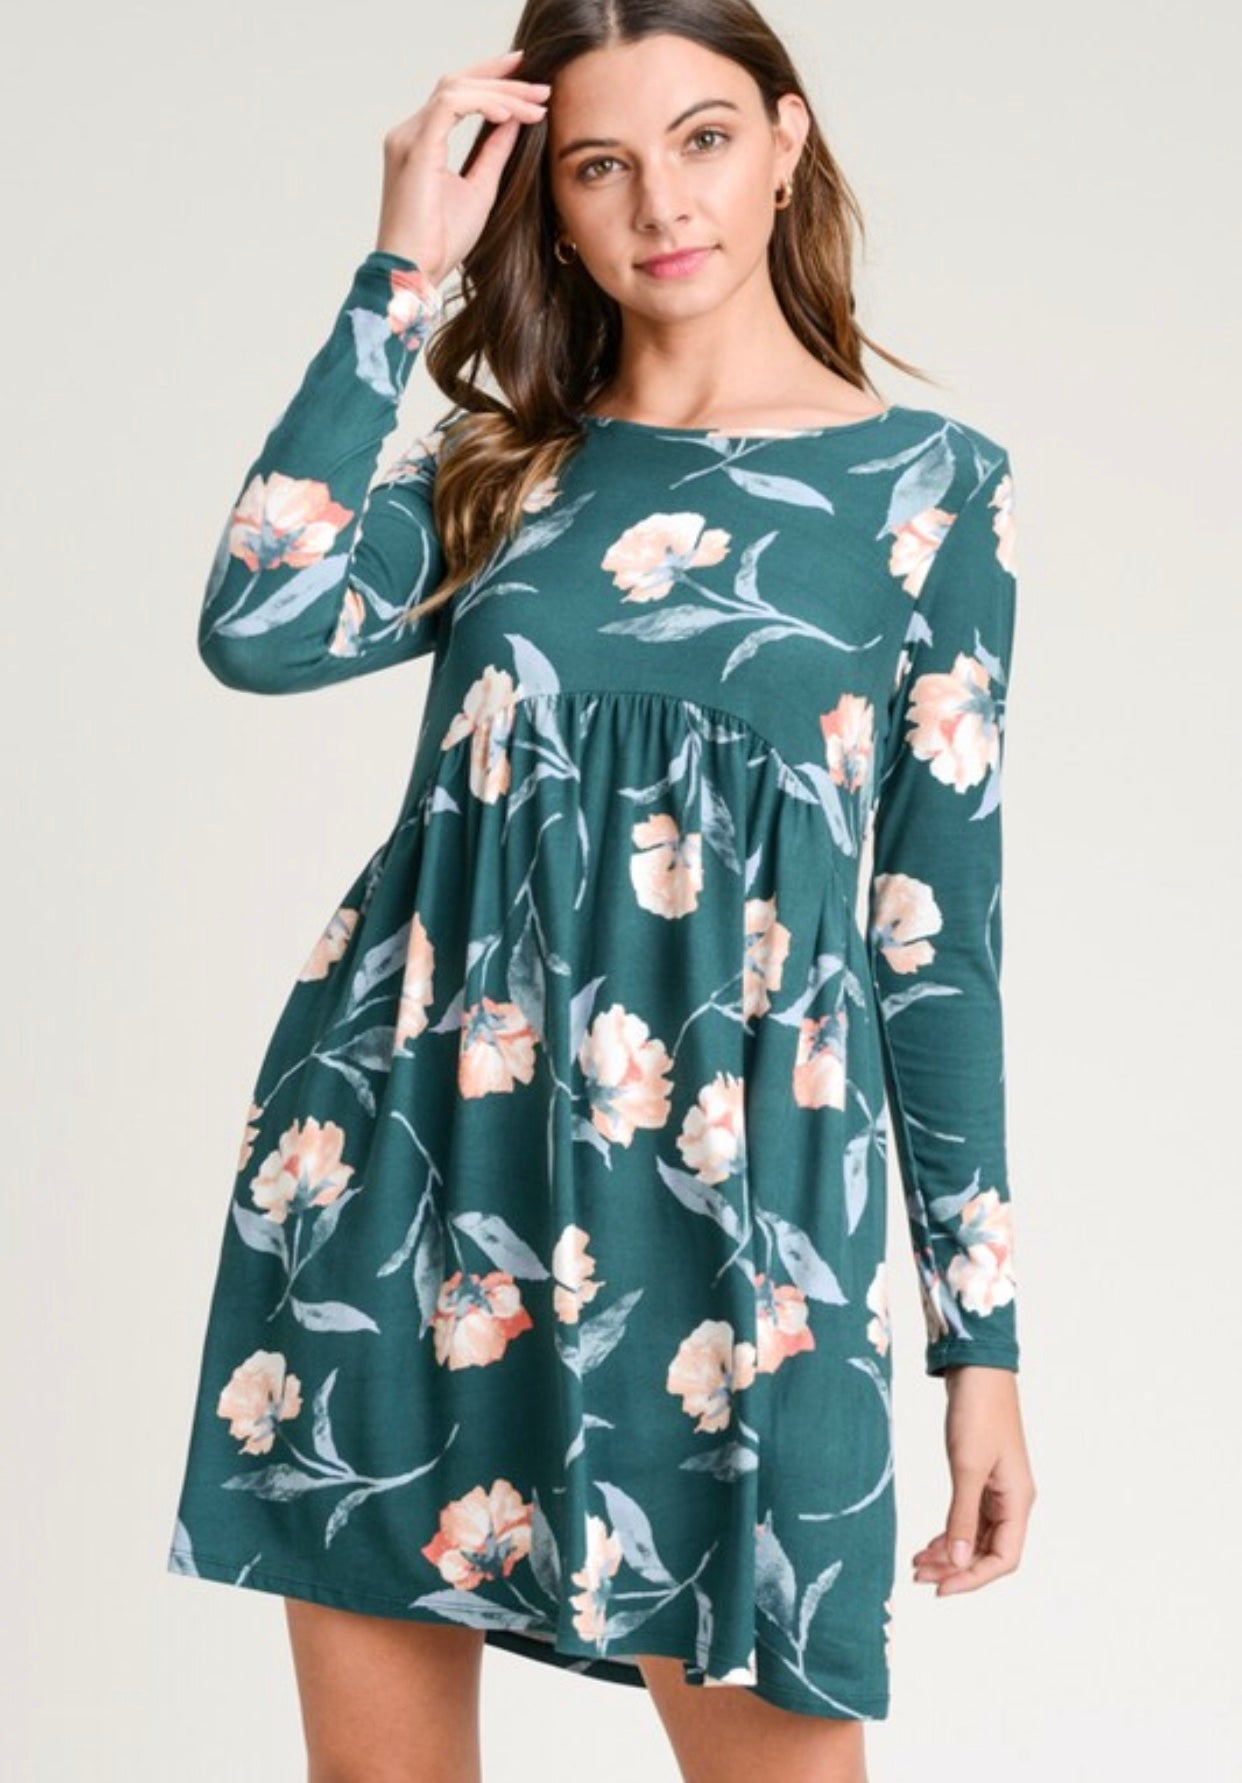 Teal Floral Dress with Cinched Waist